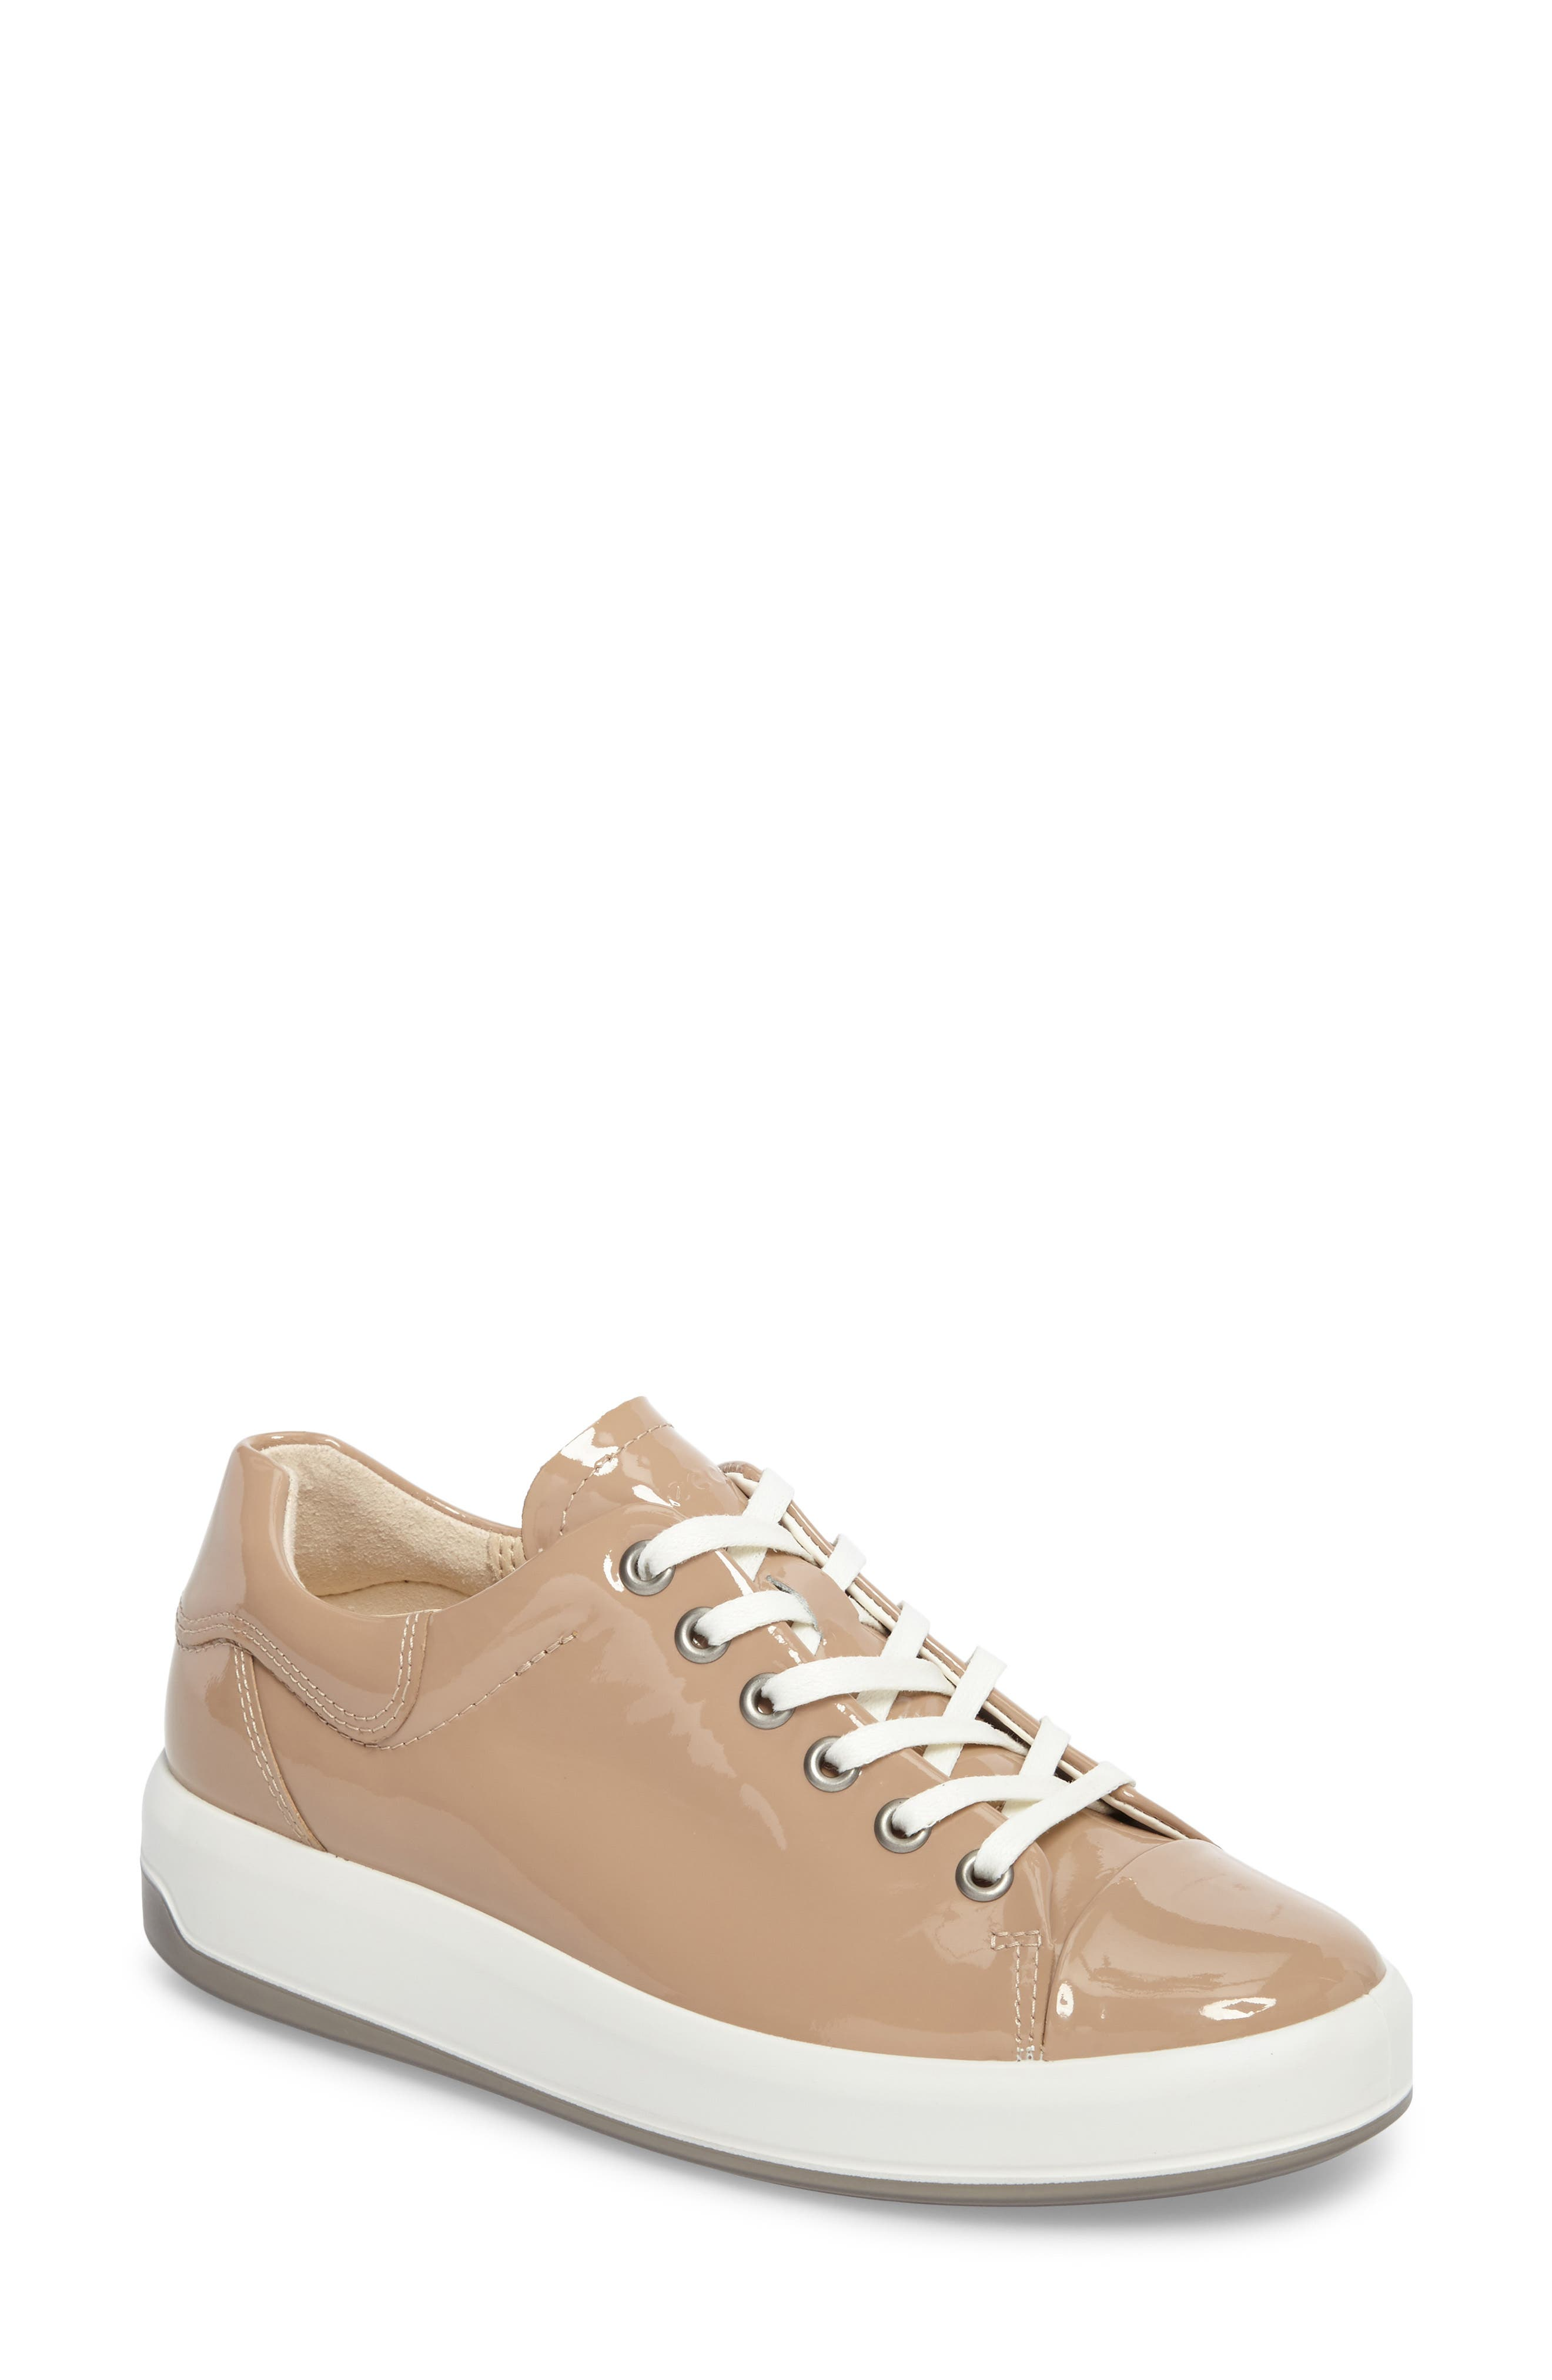 Soft 9 Sneaker,                         Main,                         color, Ginger Leather